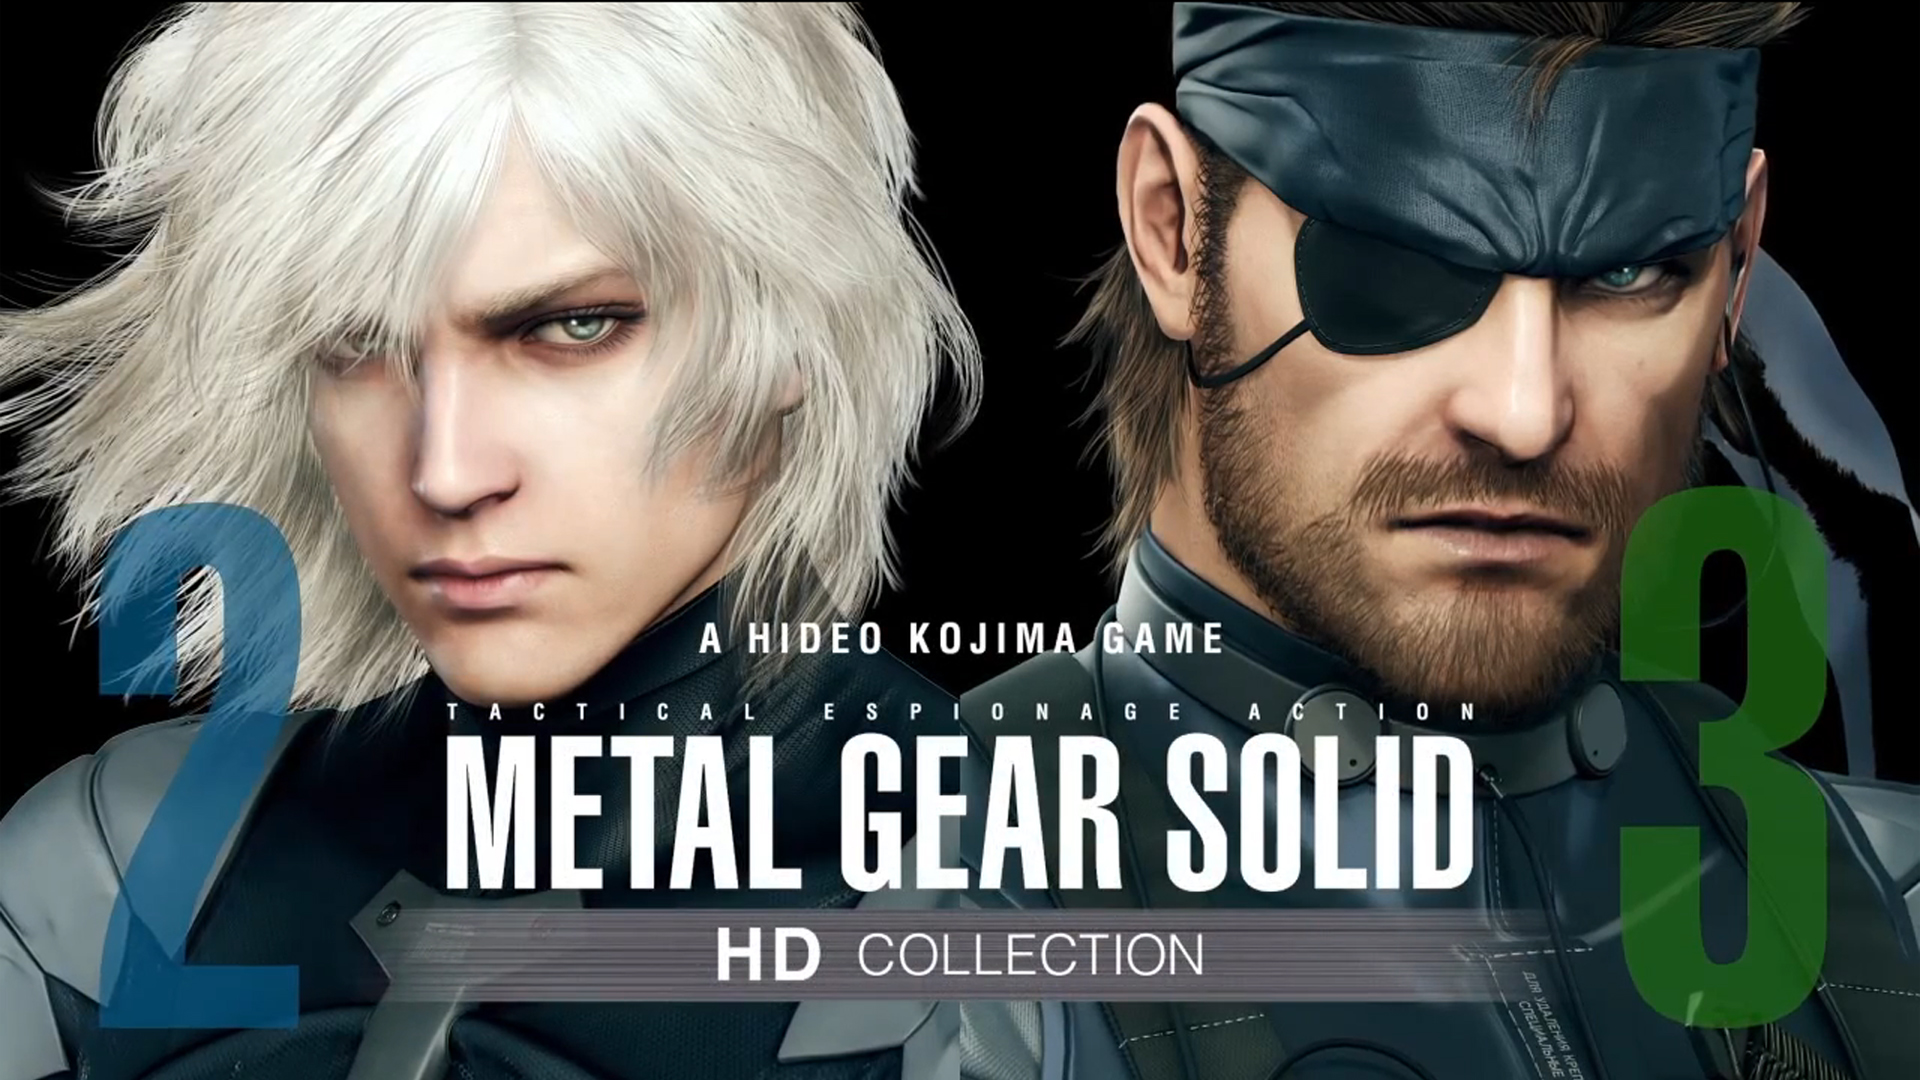 Metal Gear Solid Hd Collection Gameplay